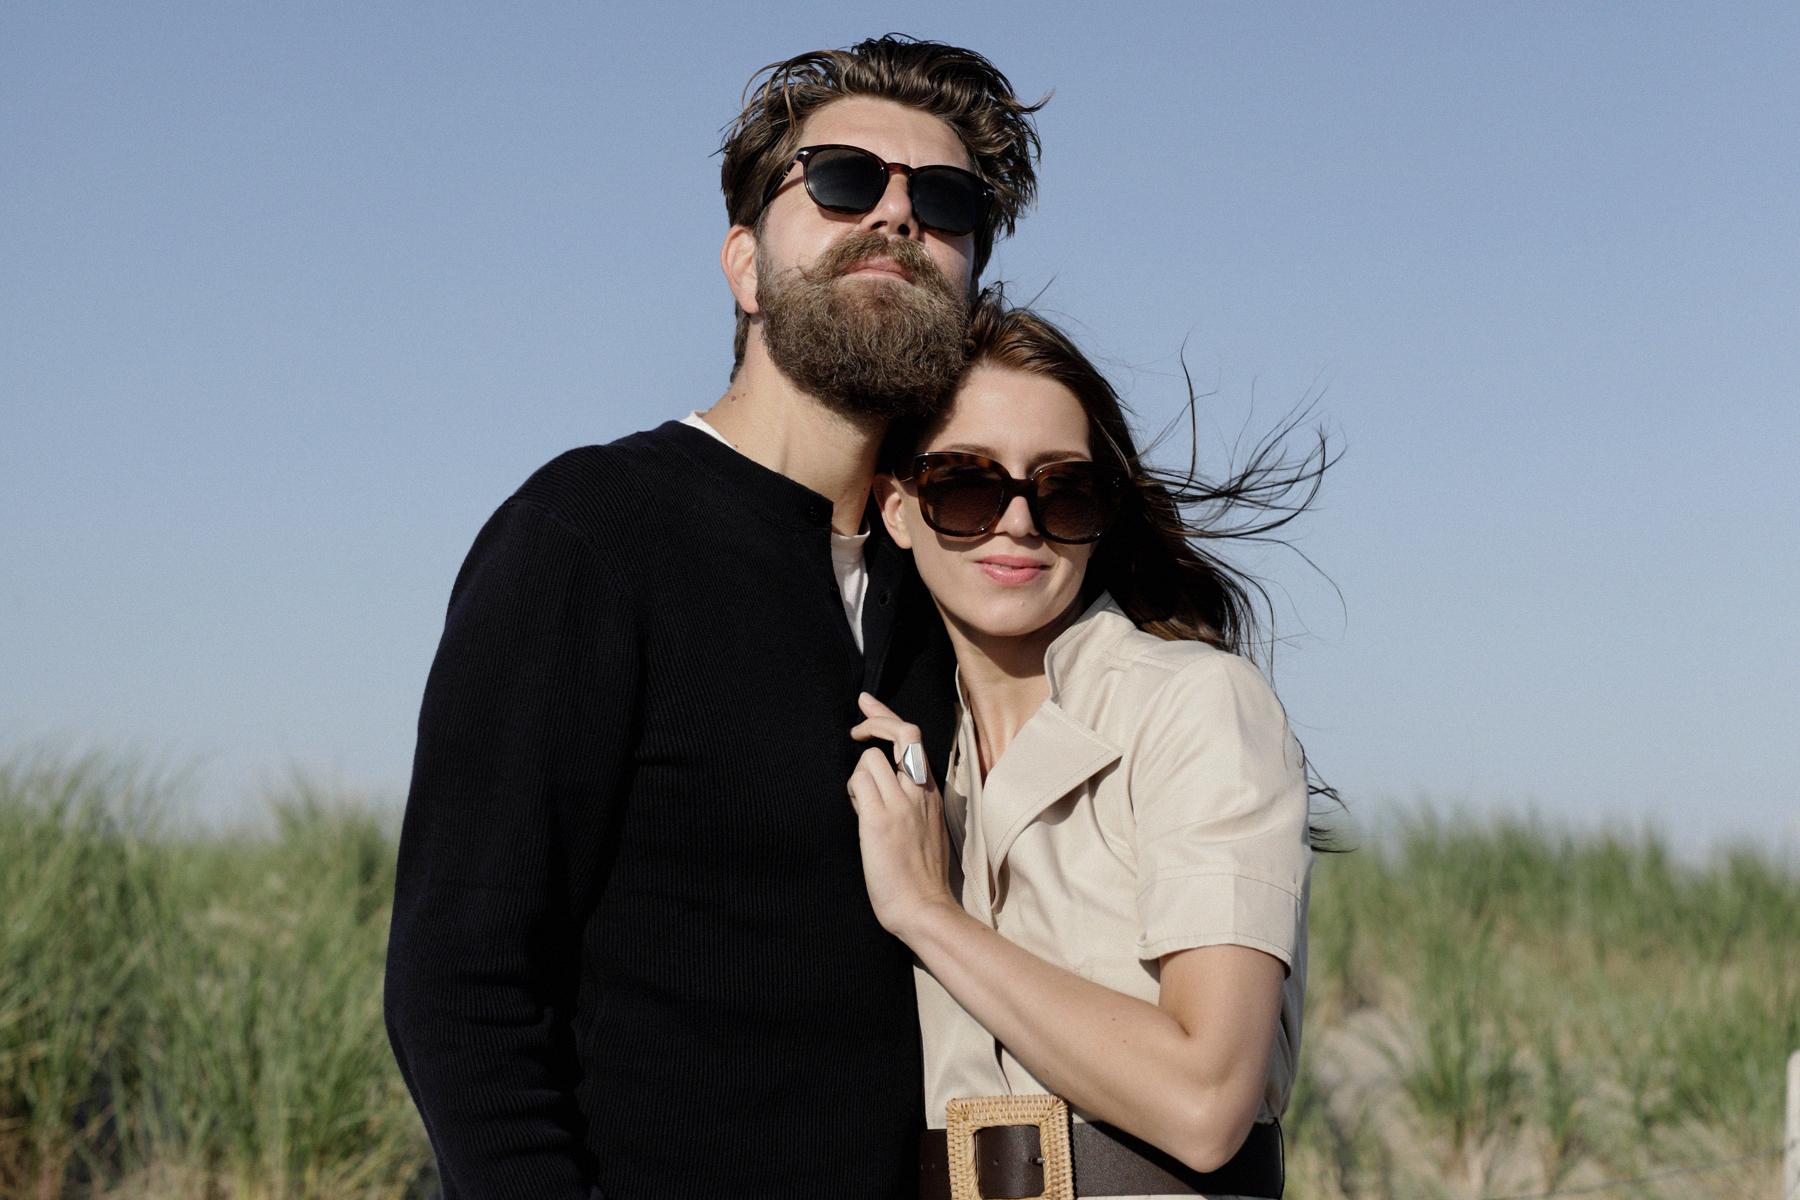 beach holland bloemendaal safari city dress outfit couple coupleblog couplegoals couplestyle romance love vintage style inspo inspiration black and white photography dusseldorf catsanddogsblog ricarda schernus modeblogger styleblog max bechmann fotograf 5